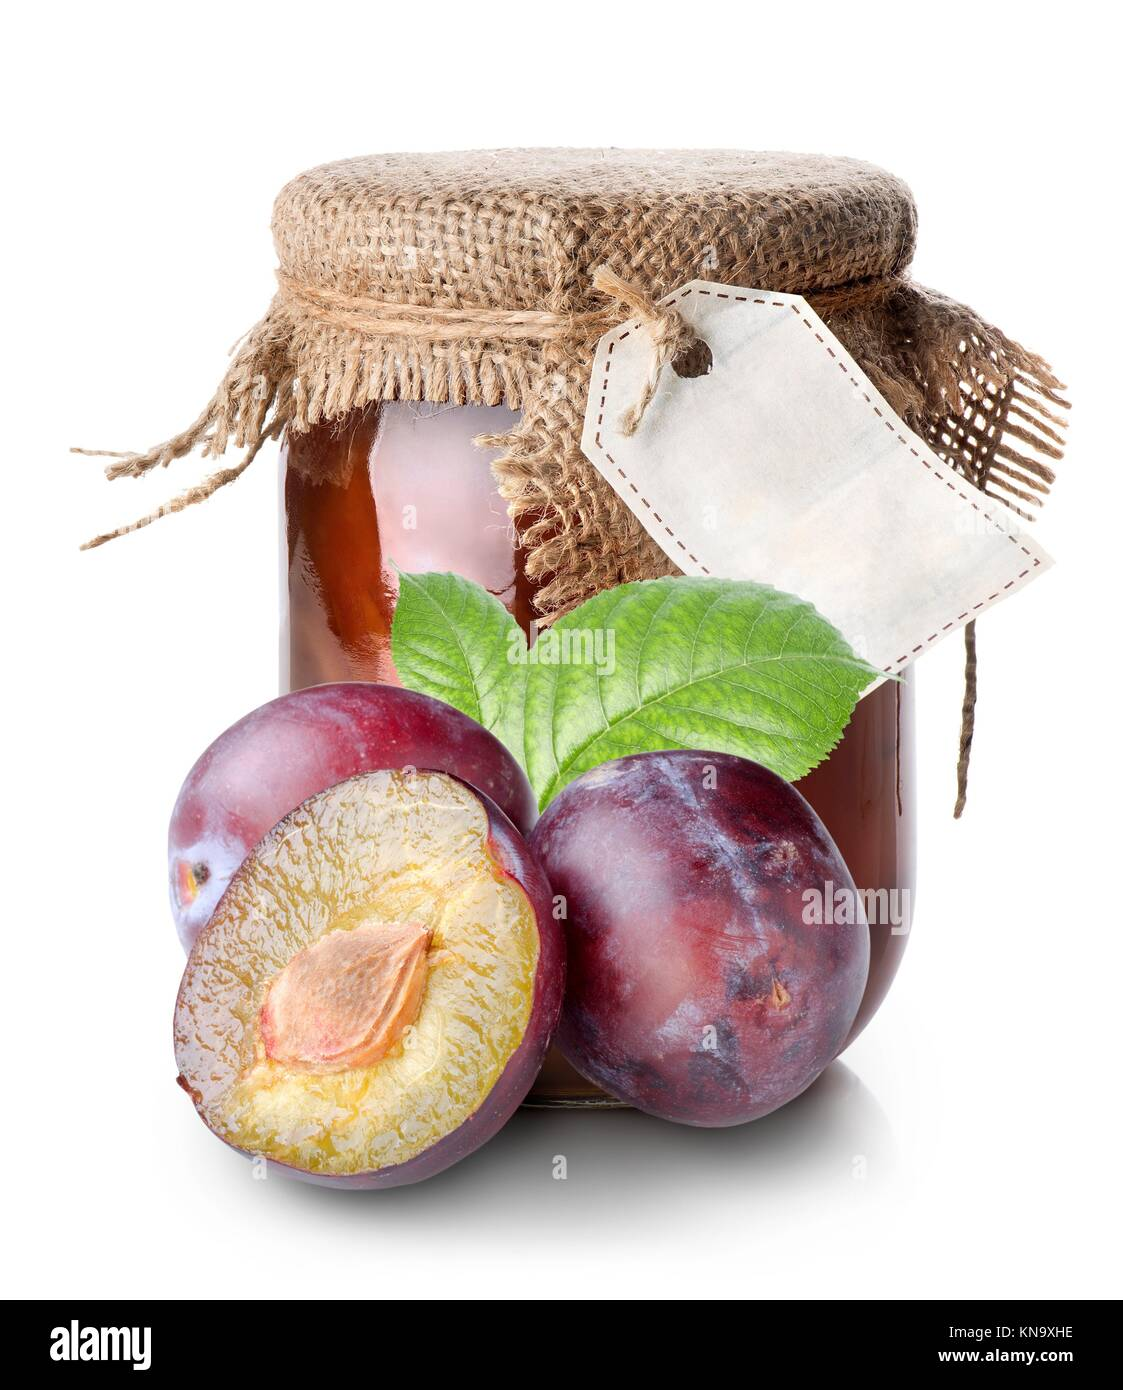 Plums and confiture in a jar isolated on white. - Stock Image